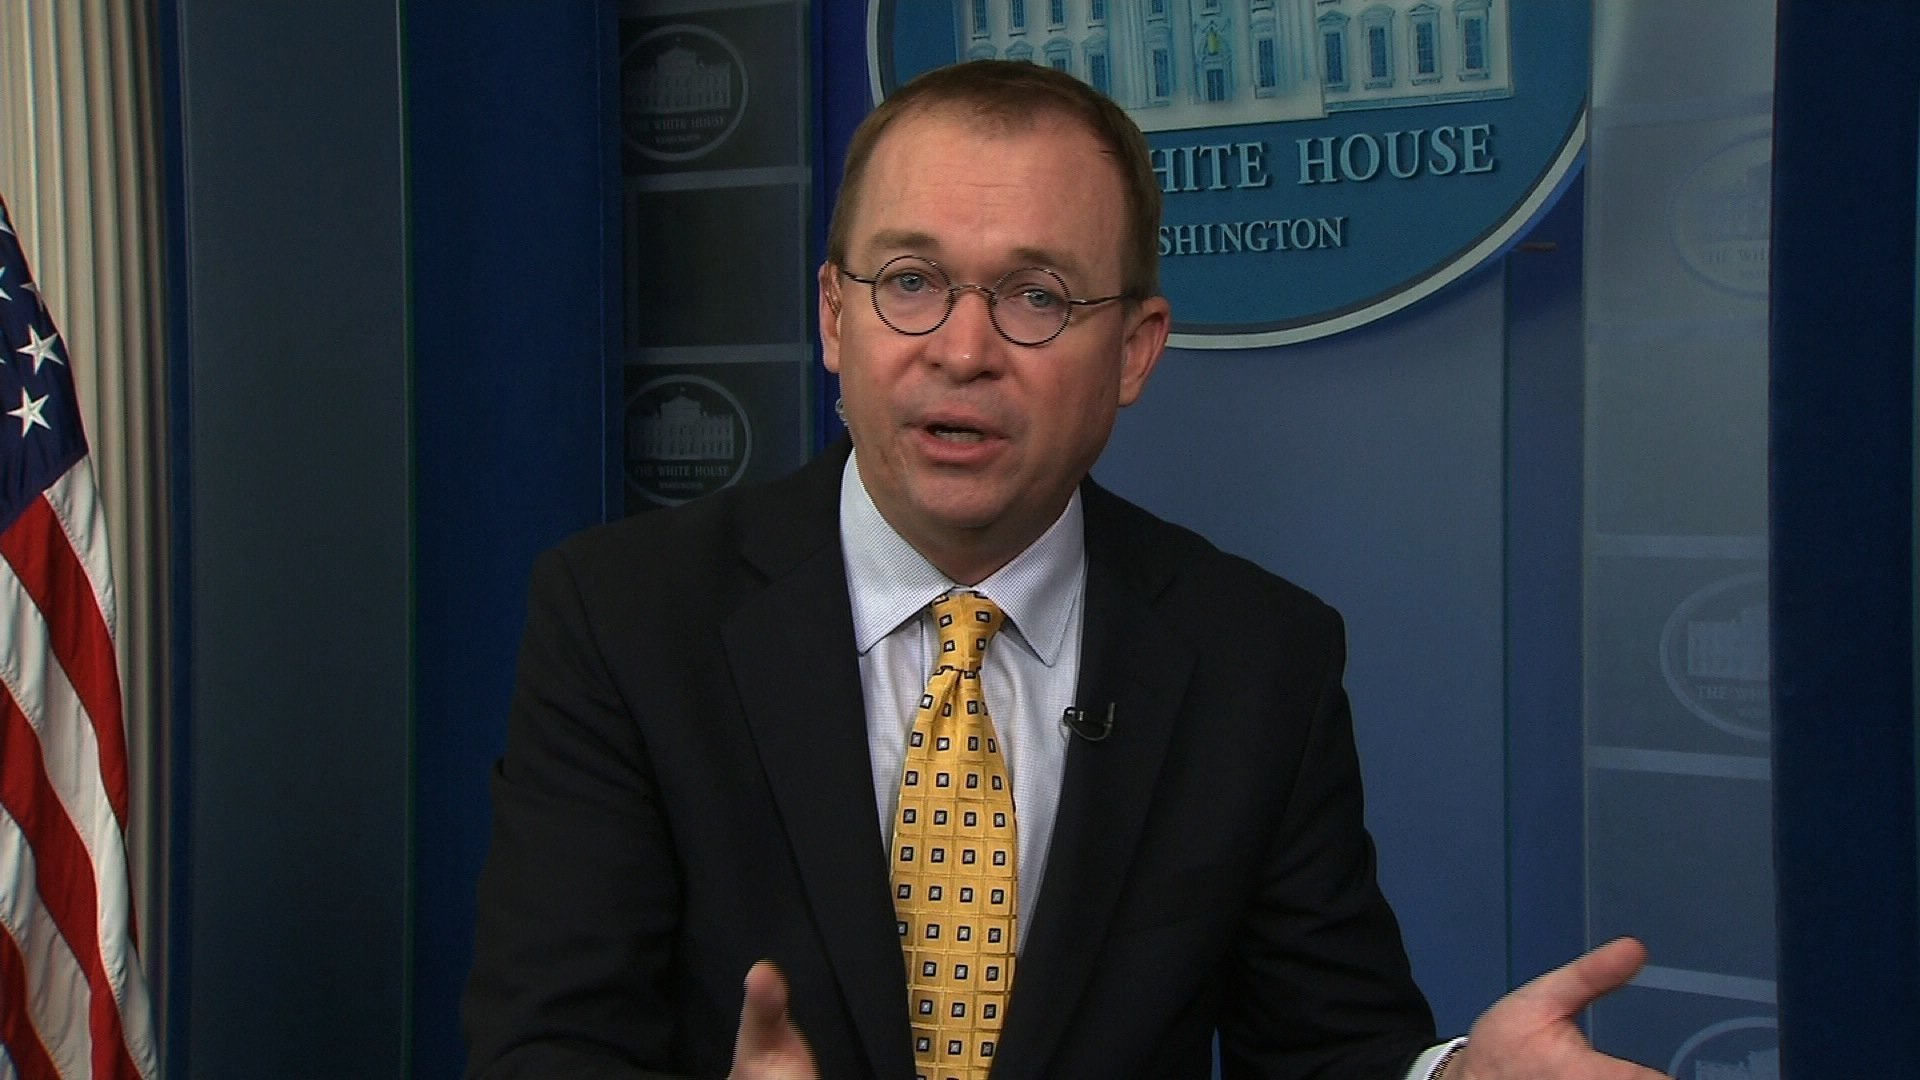 Mulvaney Reportedly Spoke to Bankers About Lobbyists Influencing Congress With Campaign Donations